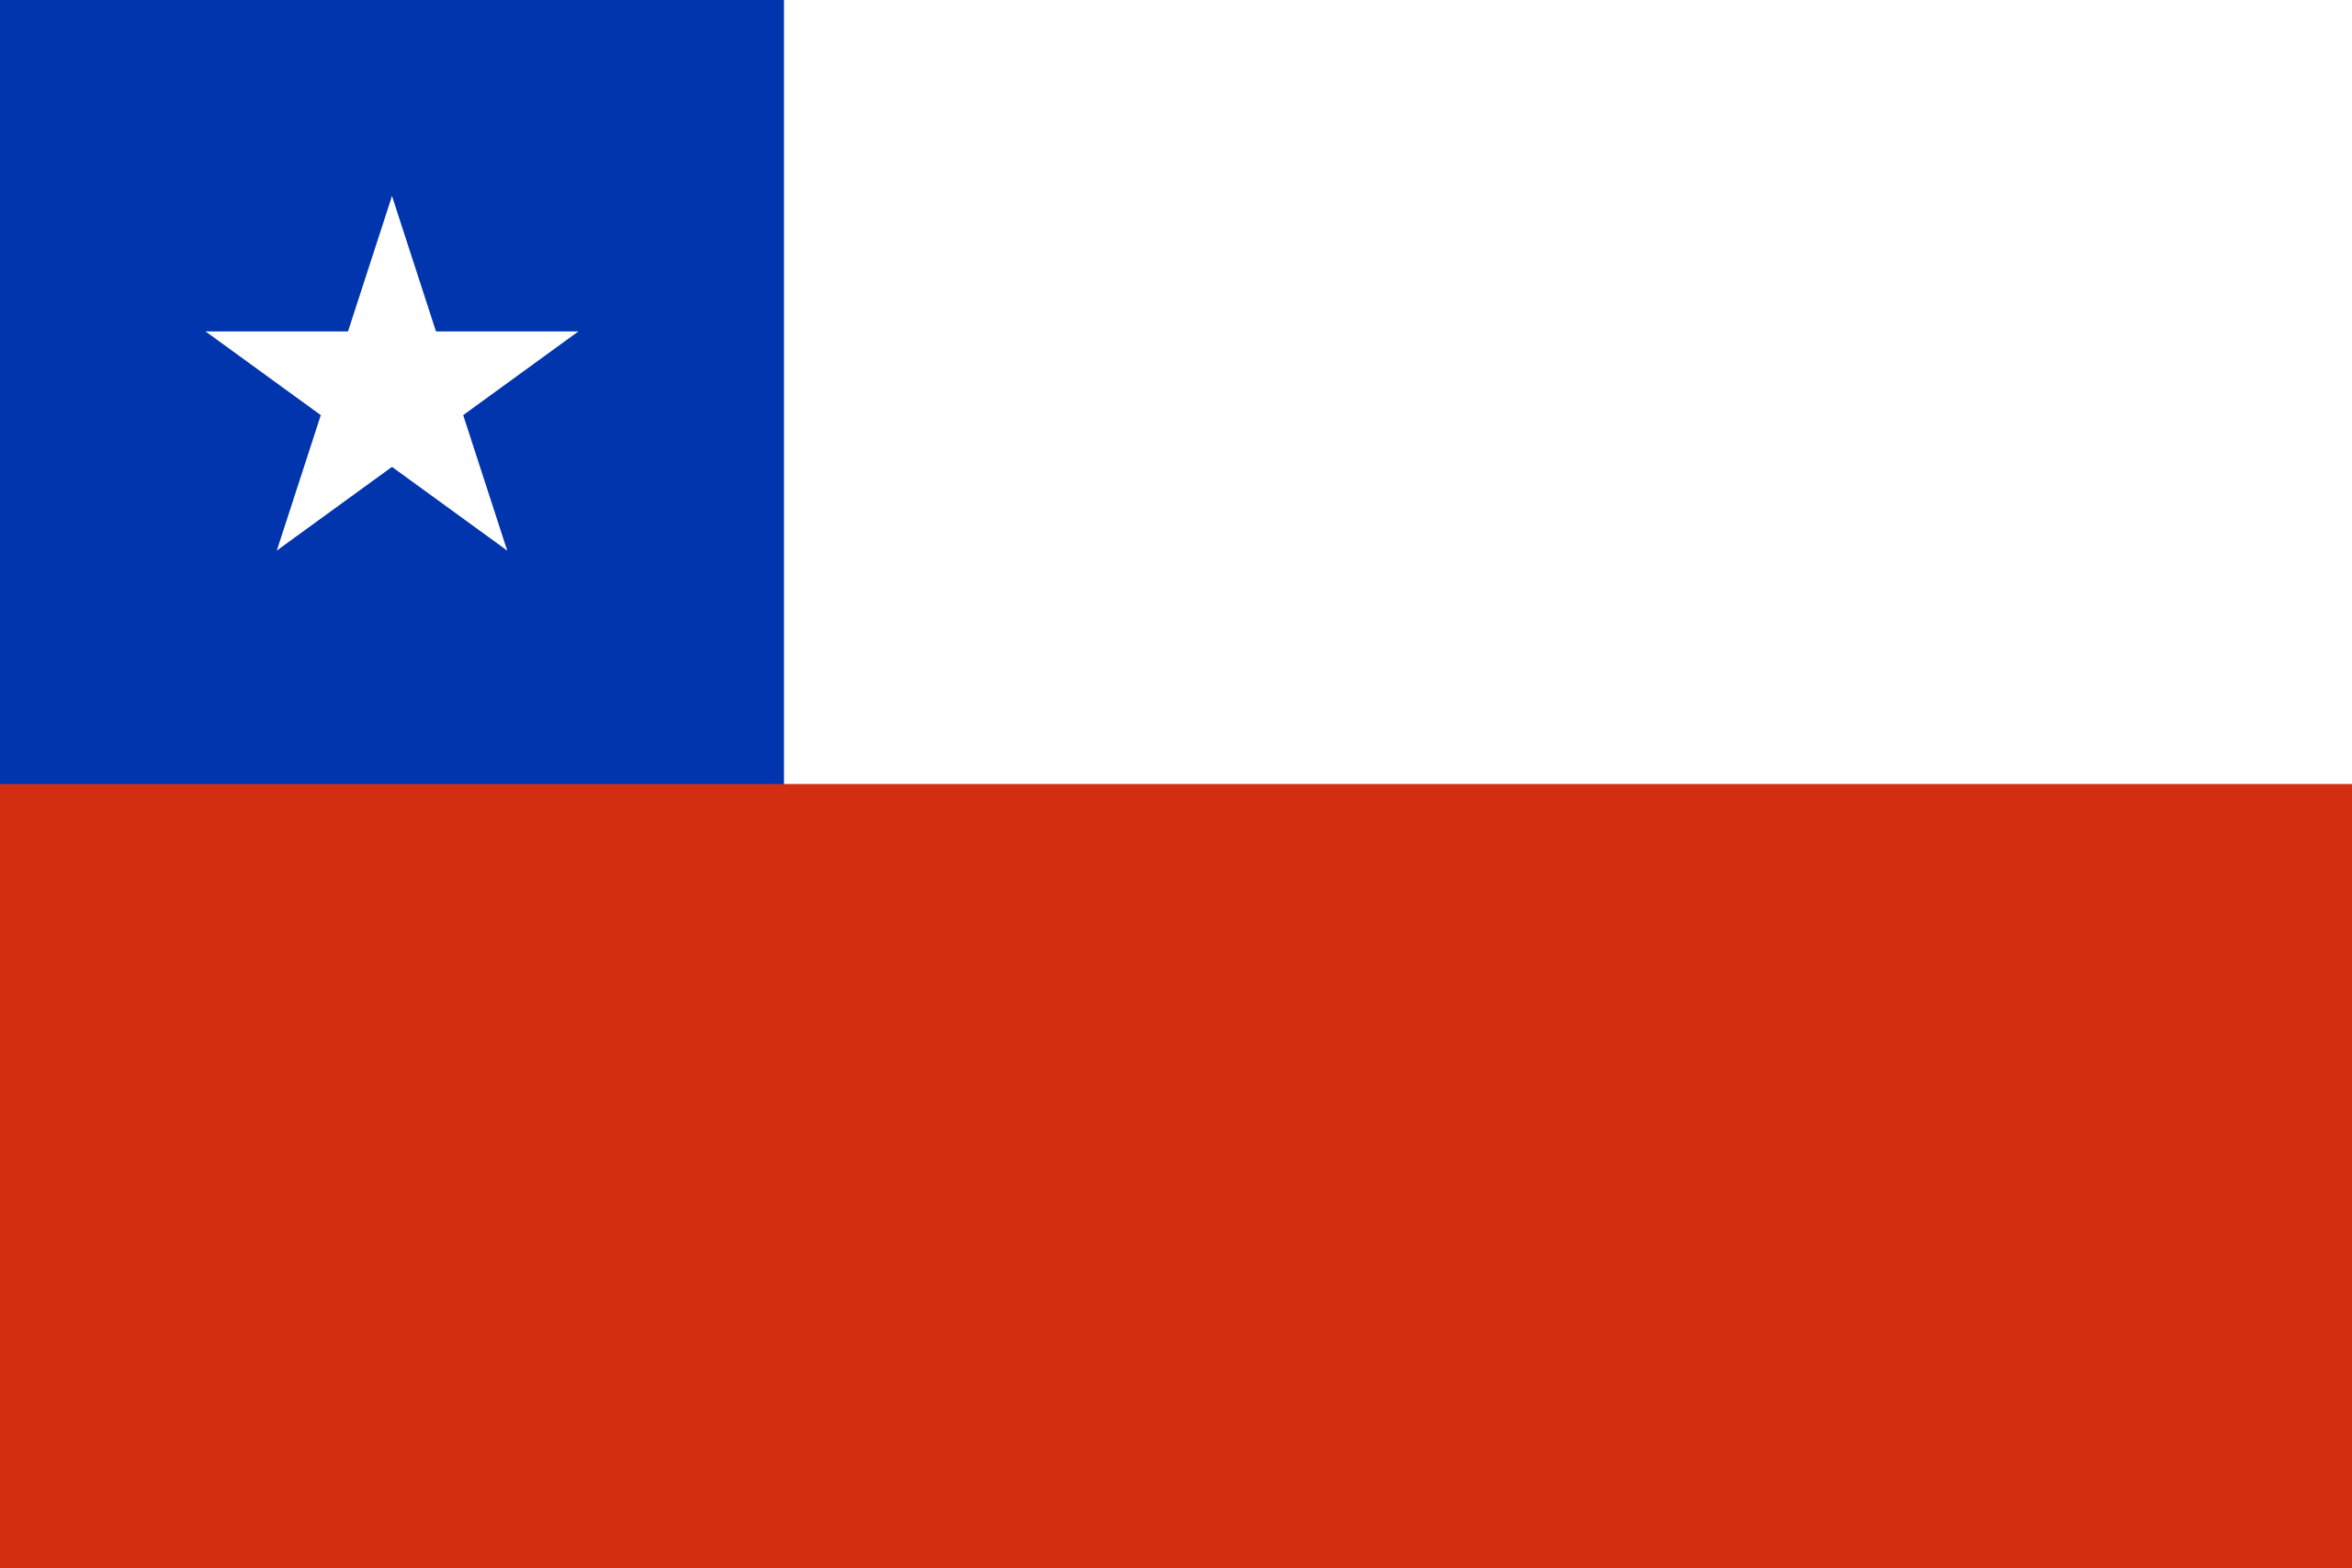 https://aerospaceexport.com/wp-content/uploads/2019/10/chile.png